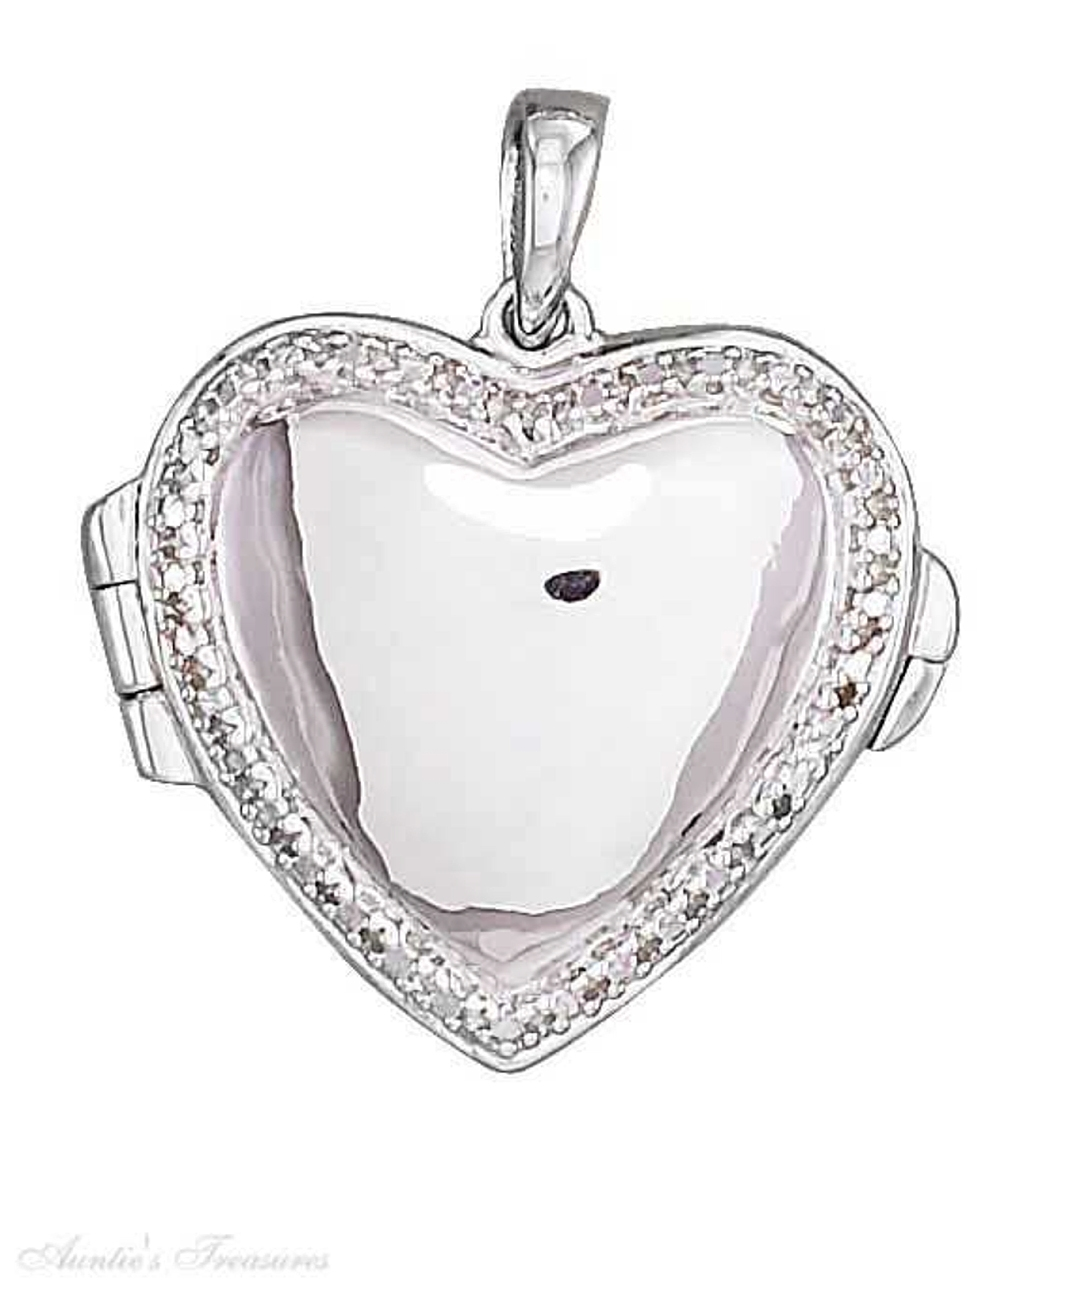 Heart Shaped Illusion Locket Pendant